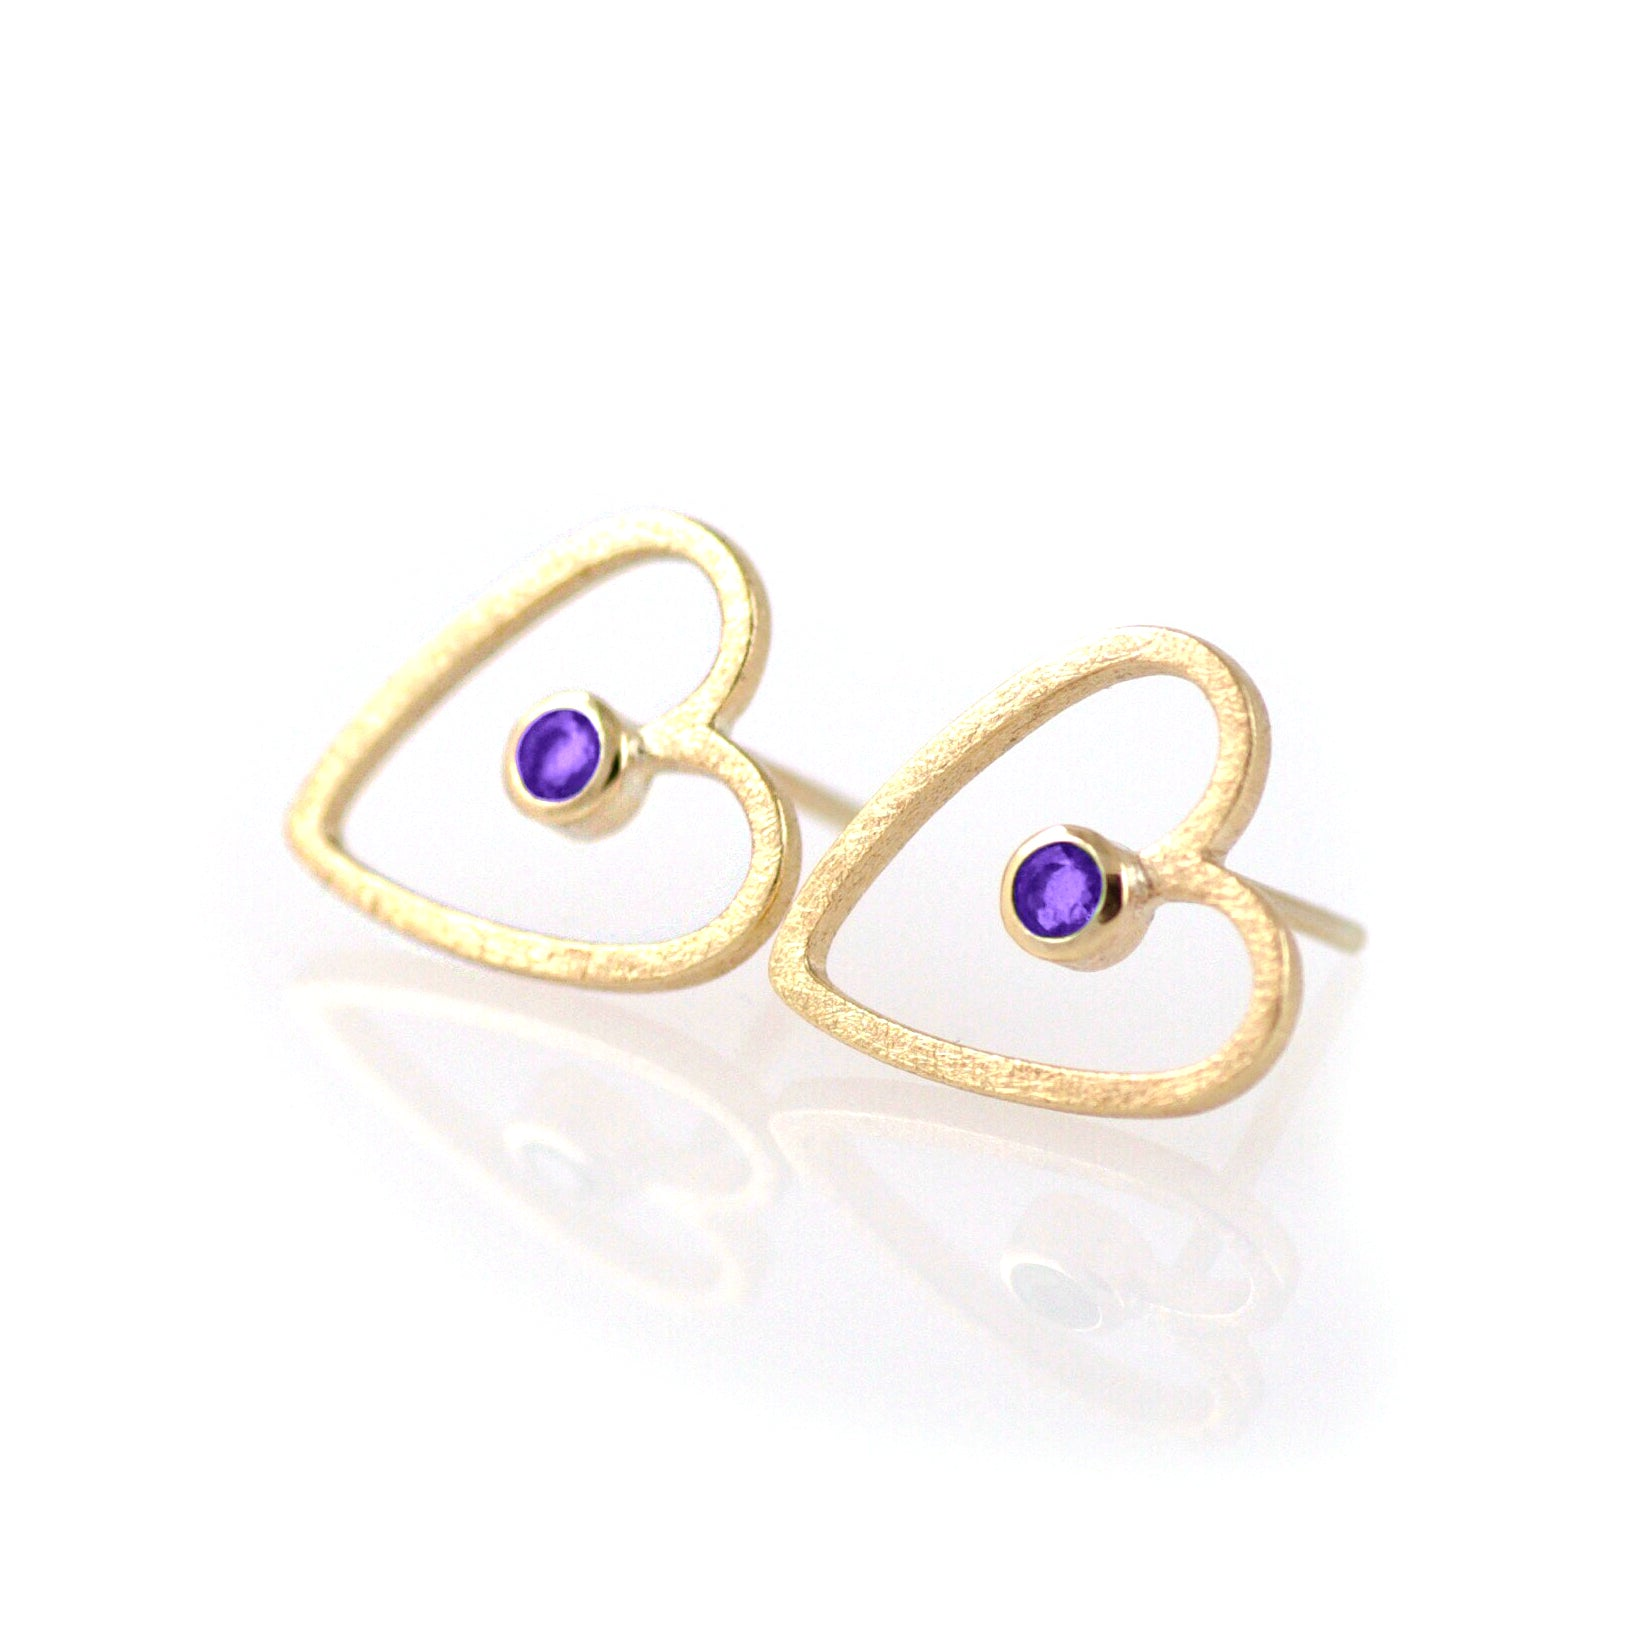 Gold Heart Stud Earrings: 9ct Yellow, Small Hearts, Tanzanite